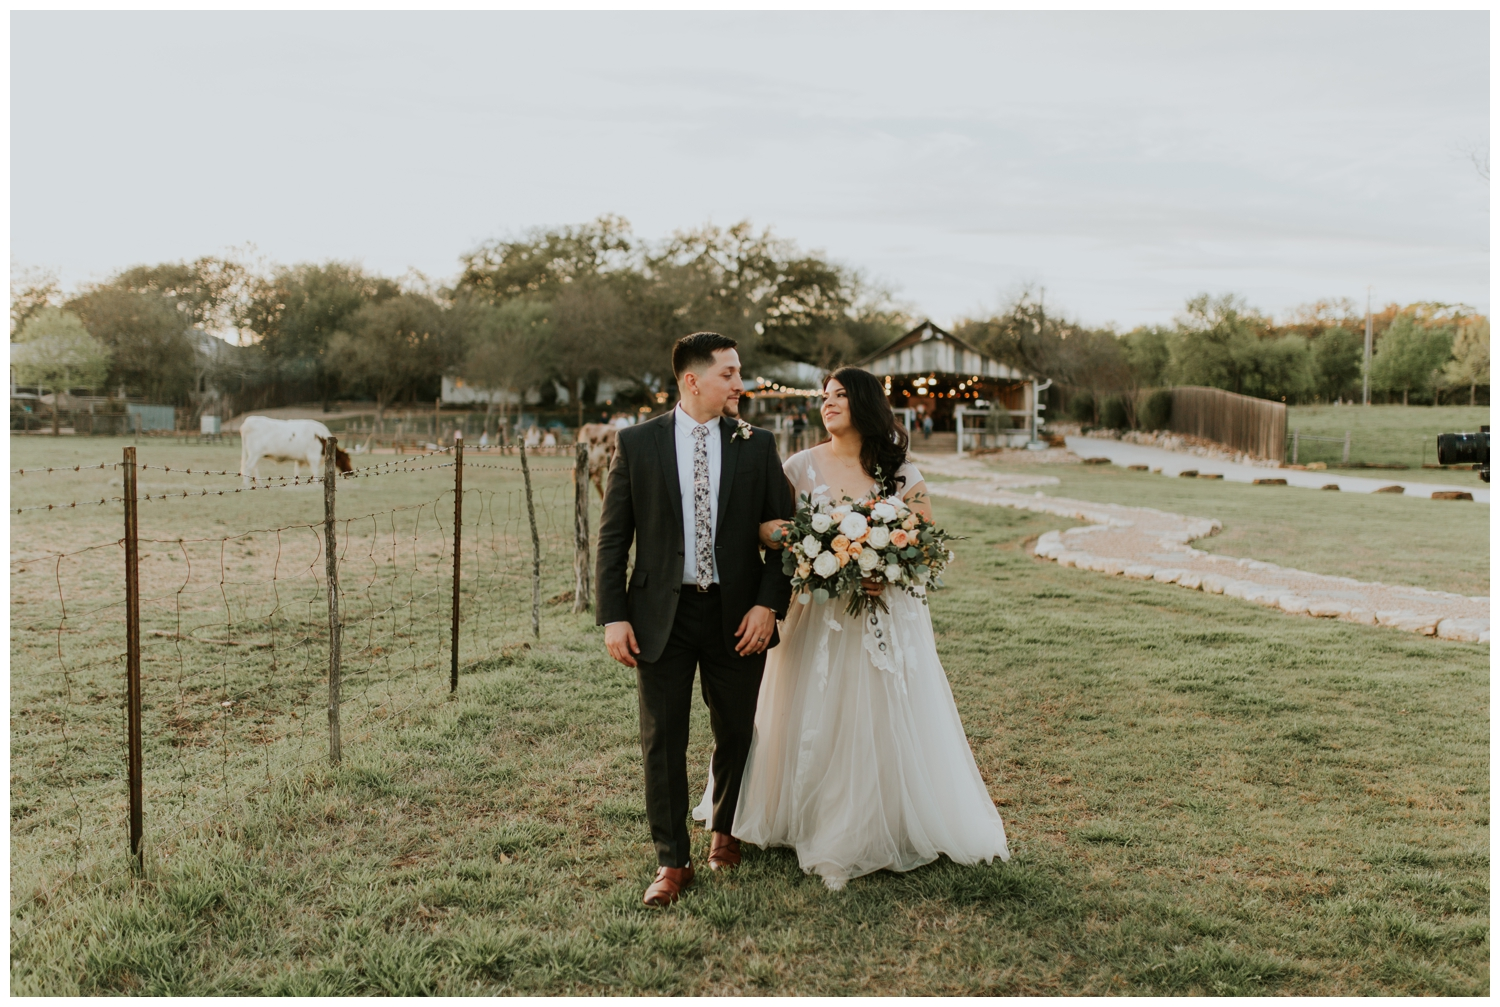 Sarah+Michael, Gruene Estate Wedding, San Antonio, Contista Productions Wedding Photography_0067.jpg